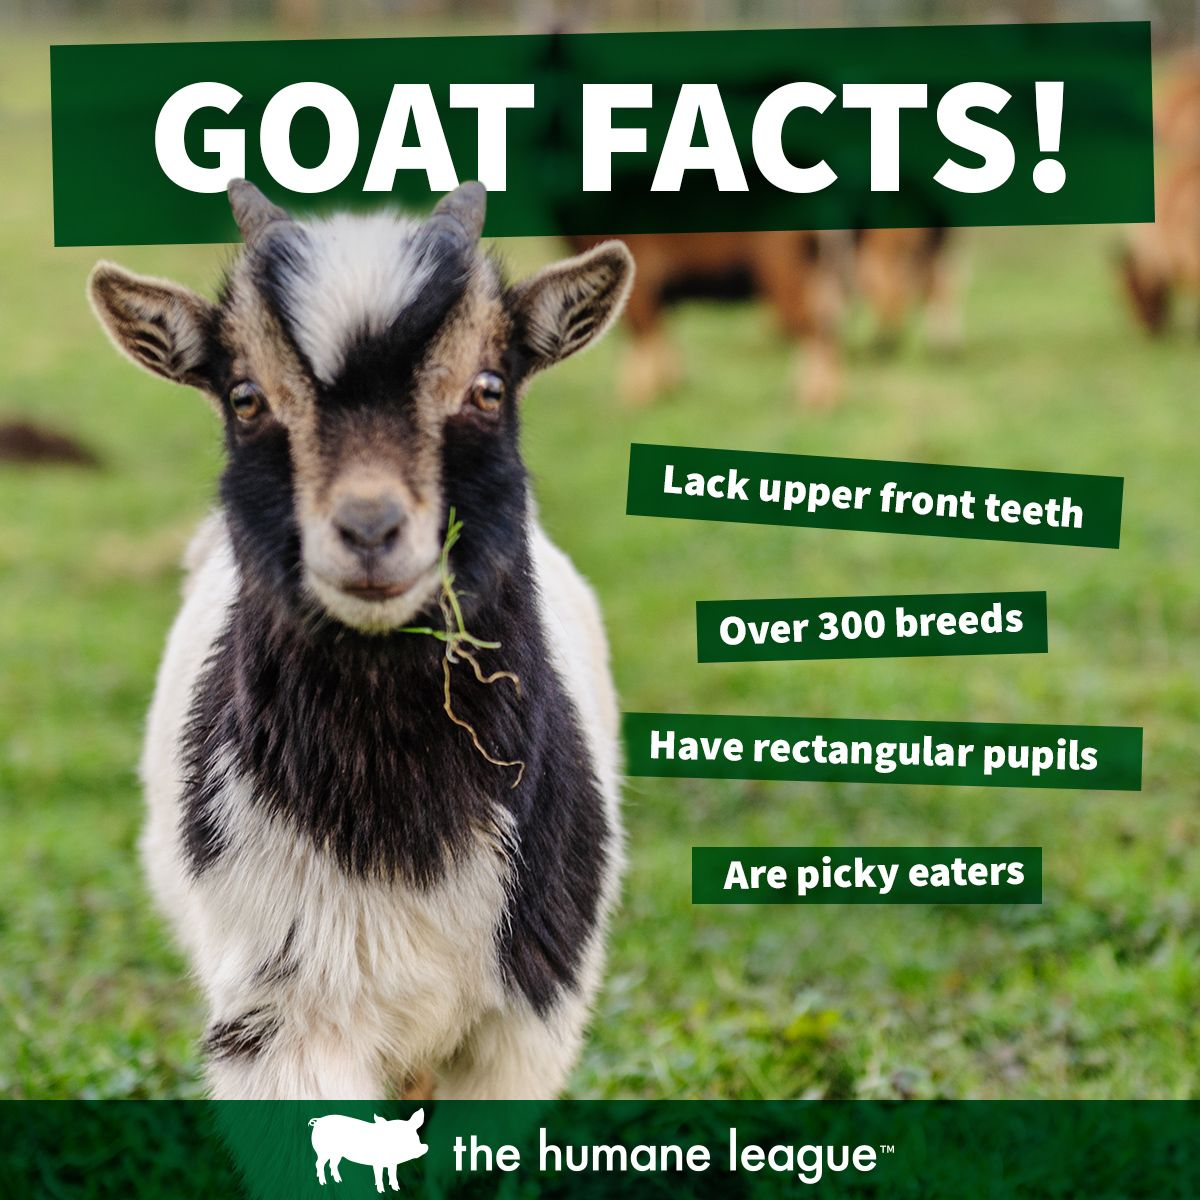 Image of: Eating How To Become Vegan Animal Facts Vegan Life Goats Pinterest Goat Facts Animal Facts Animal Facts Facts Animals